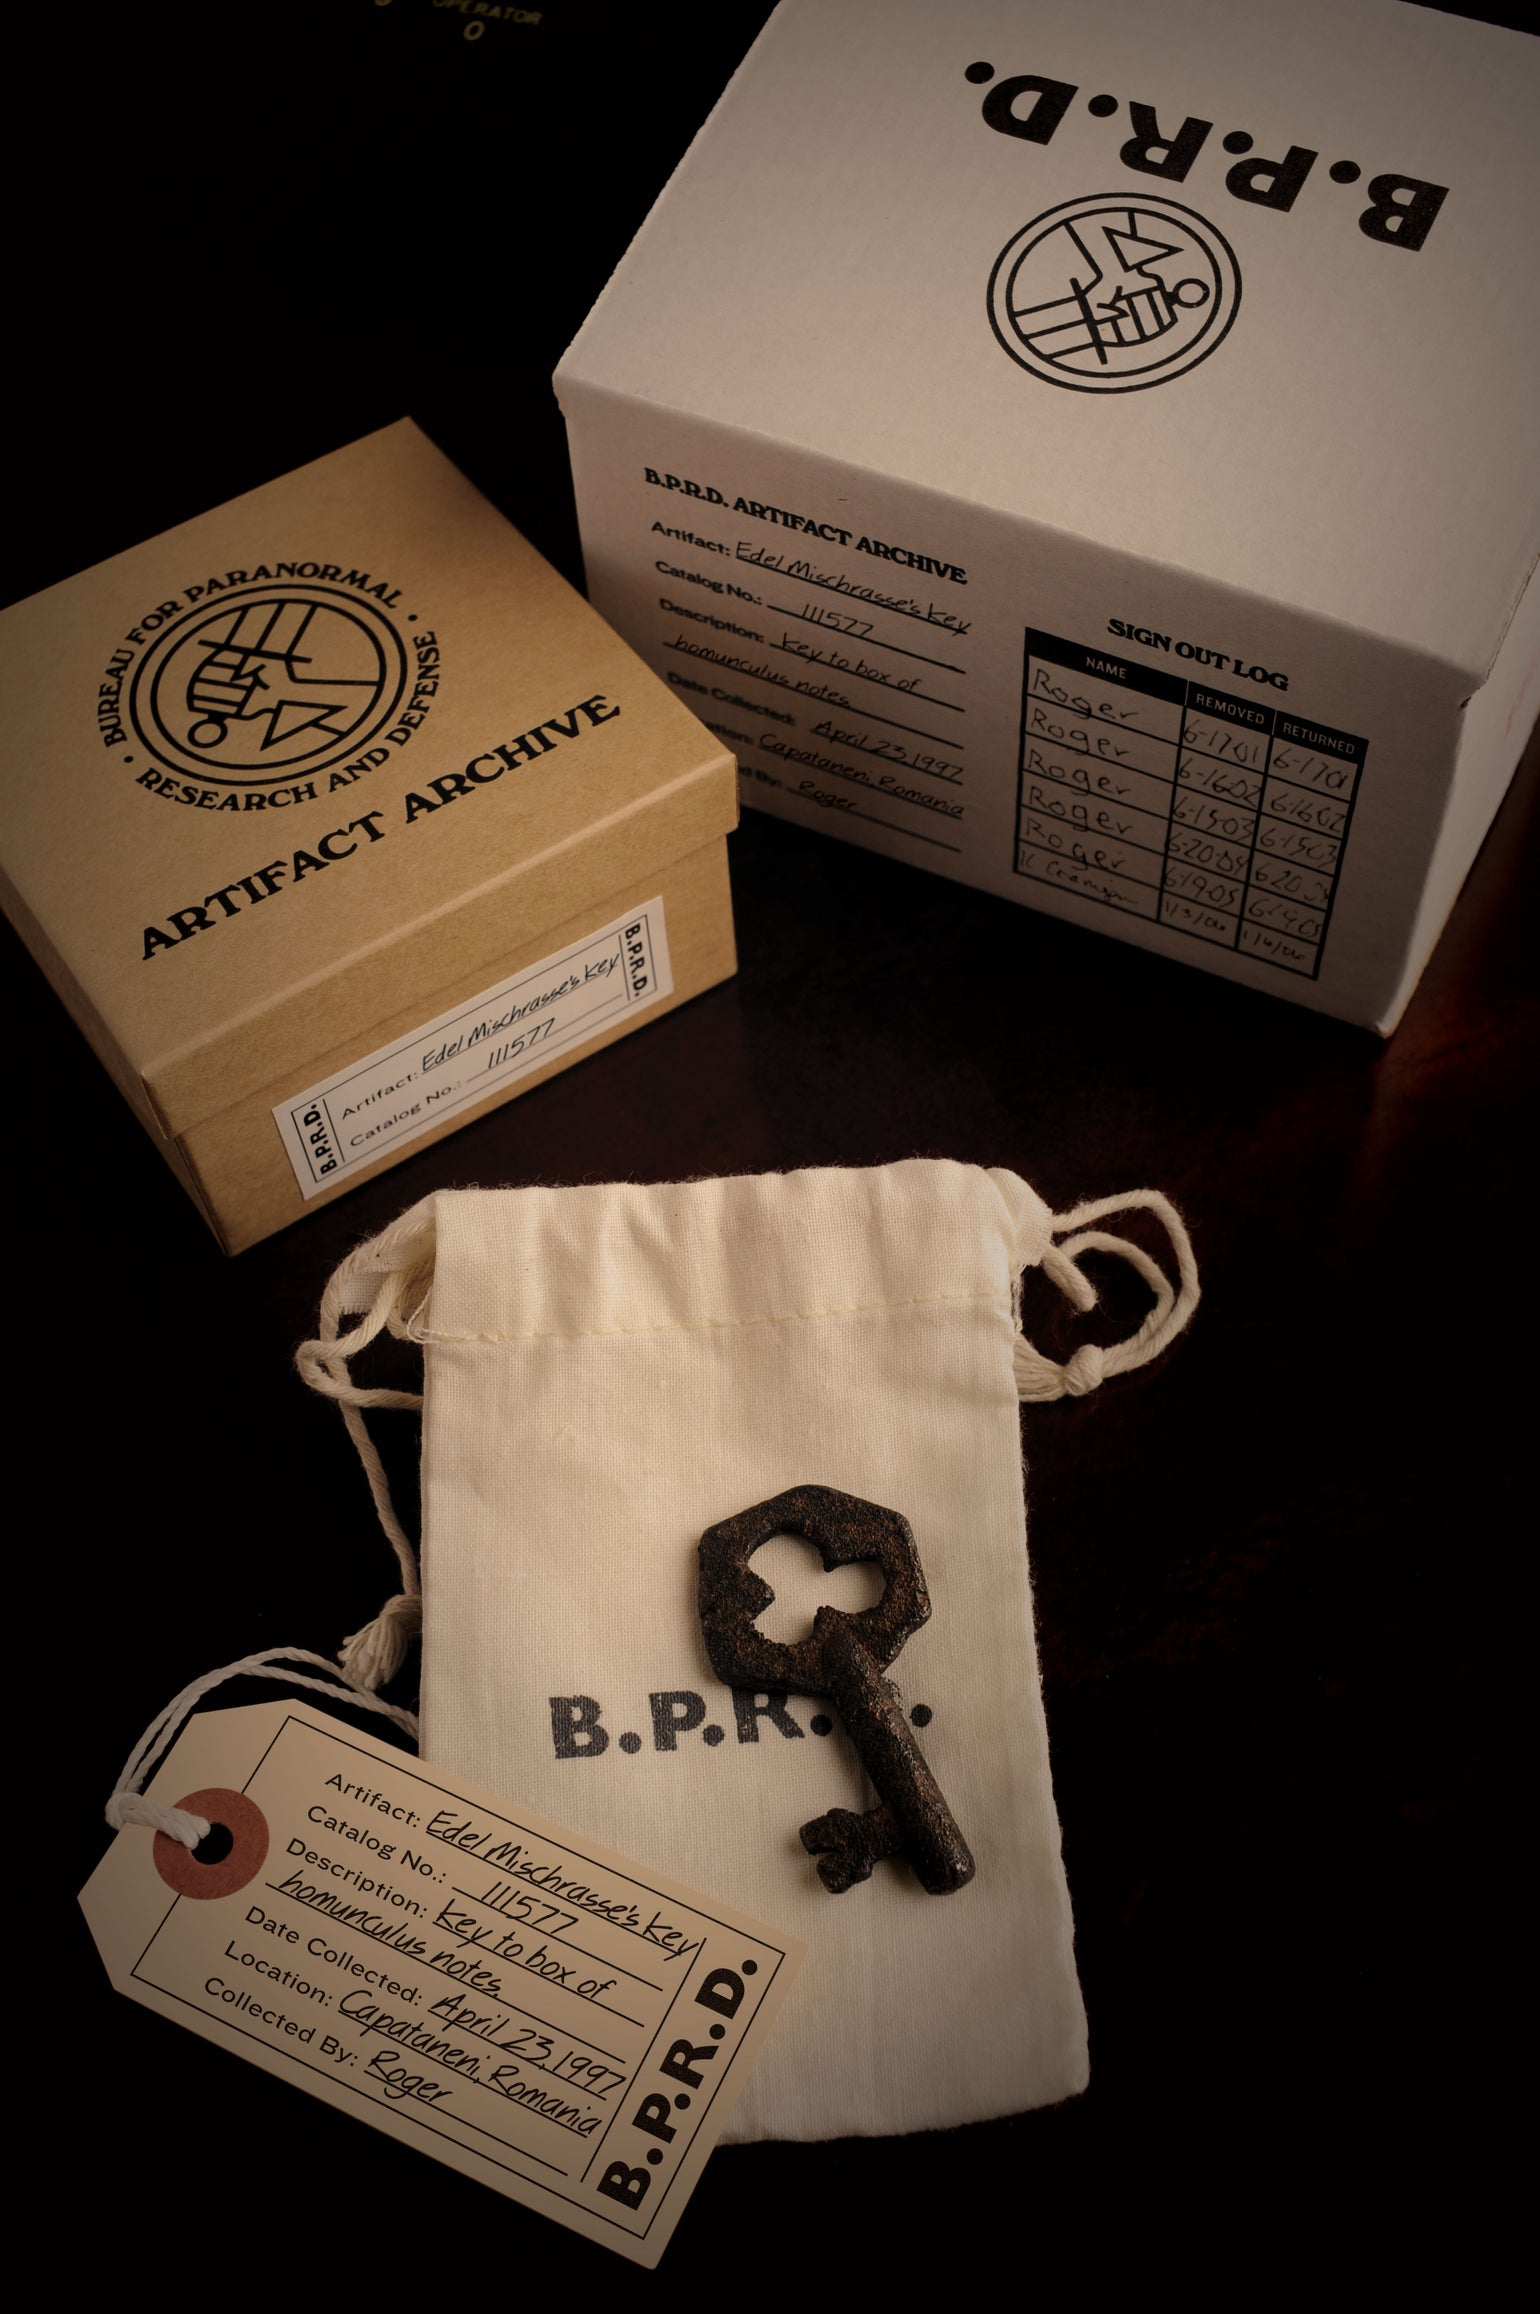 Image of Hellboy/B.P.R.D.: Limited Edition Edel Mischrasse's Key! - TEMPORARILY SOLD OUT